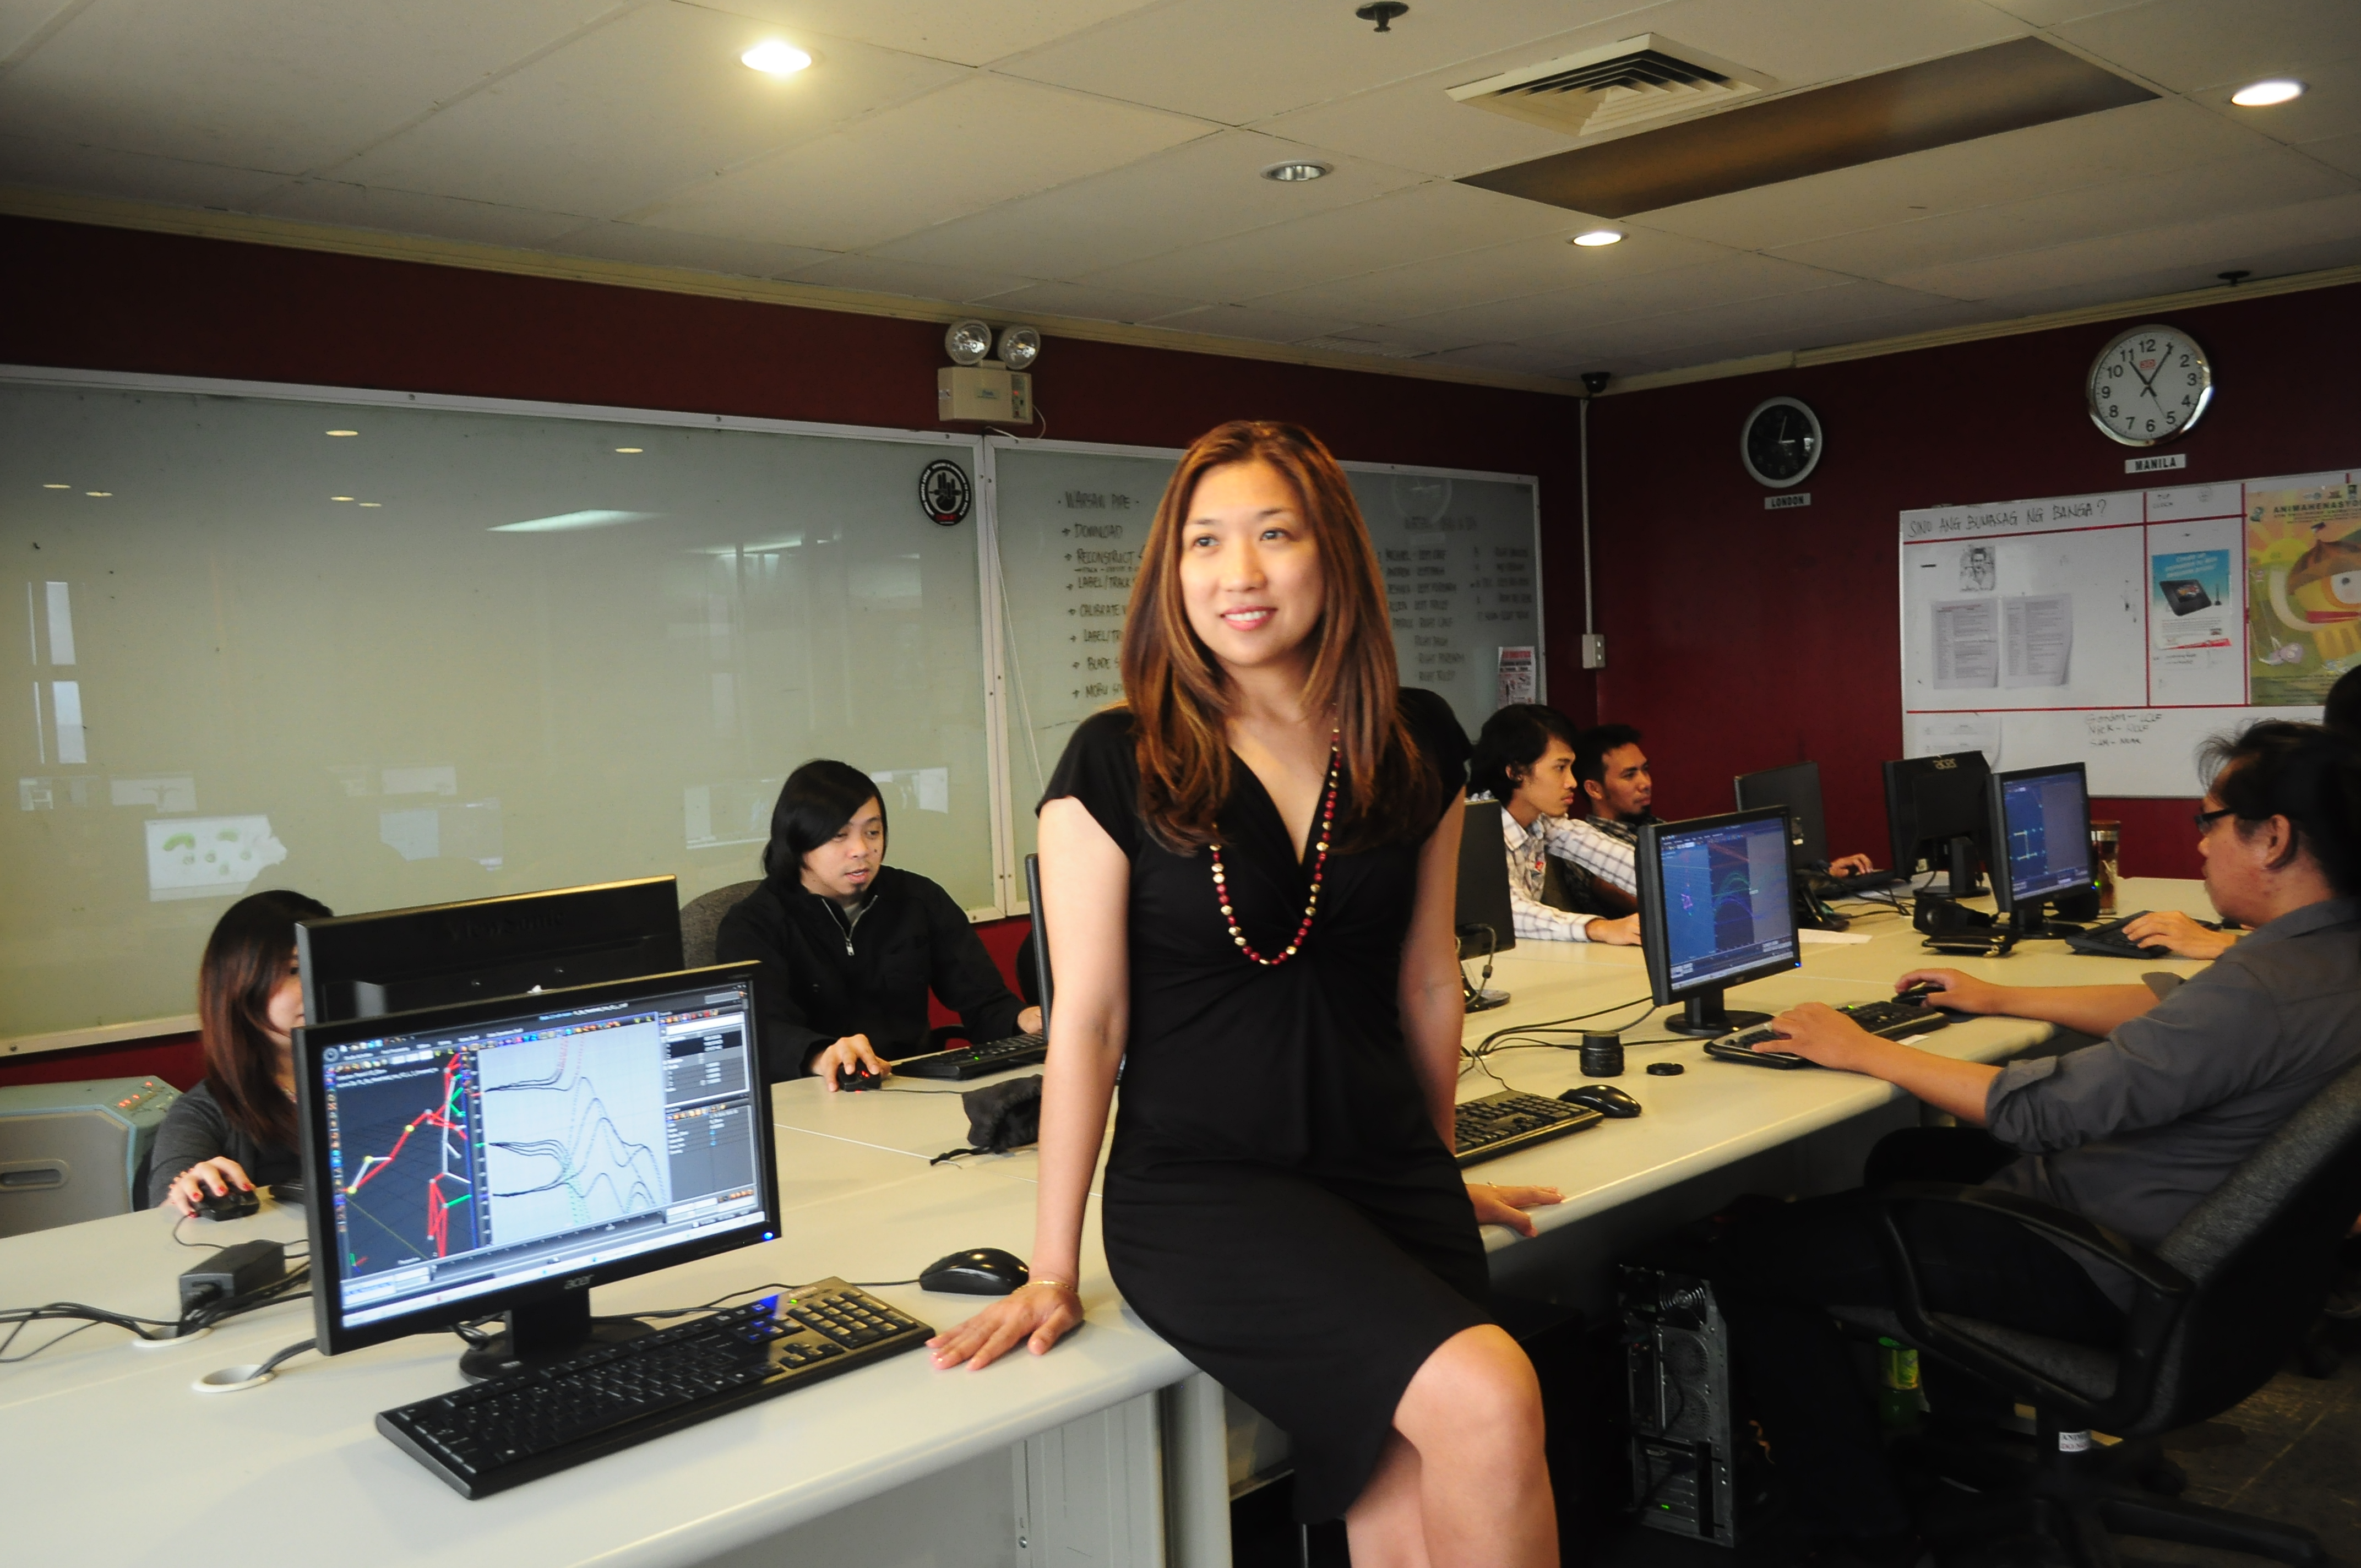 Marla Rausch is the founder of animation and motion capture services company Animation Vertigo, which has offices in the U.S. and her birth country, the Philippines.